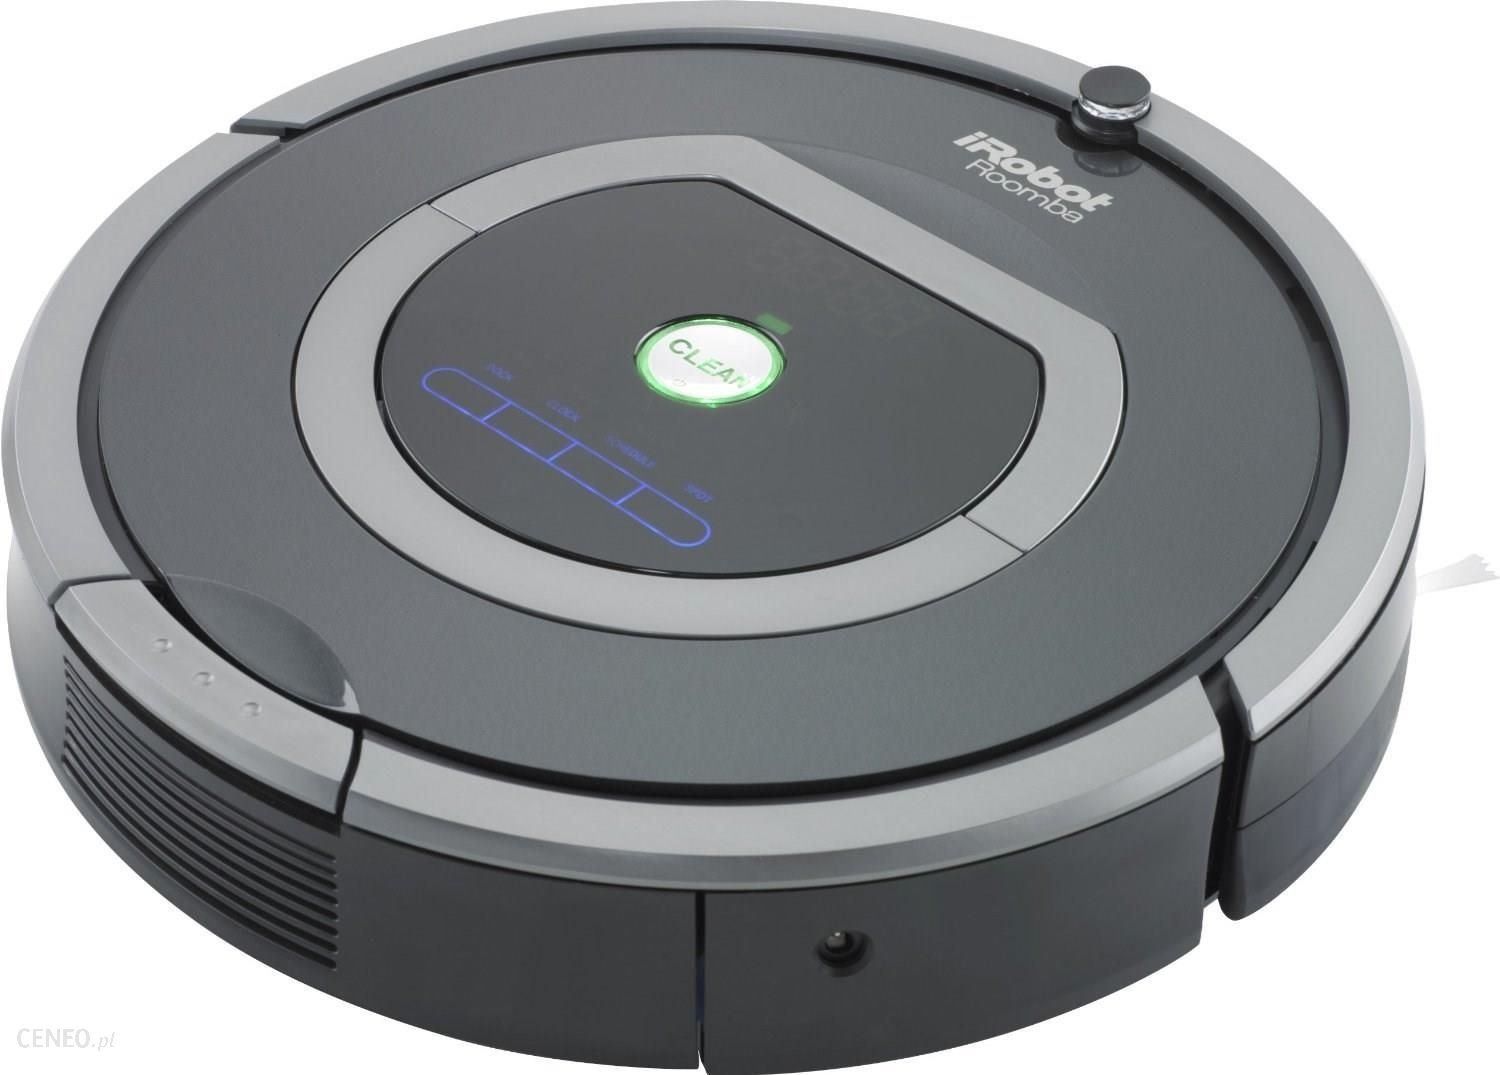 odkurzacz irobot roomba 780 opinie i ceny na. Black Bedroom Furniture Sets. Home Design Ideas